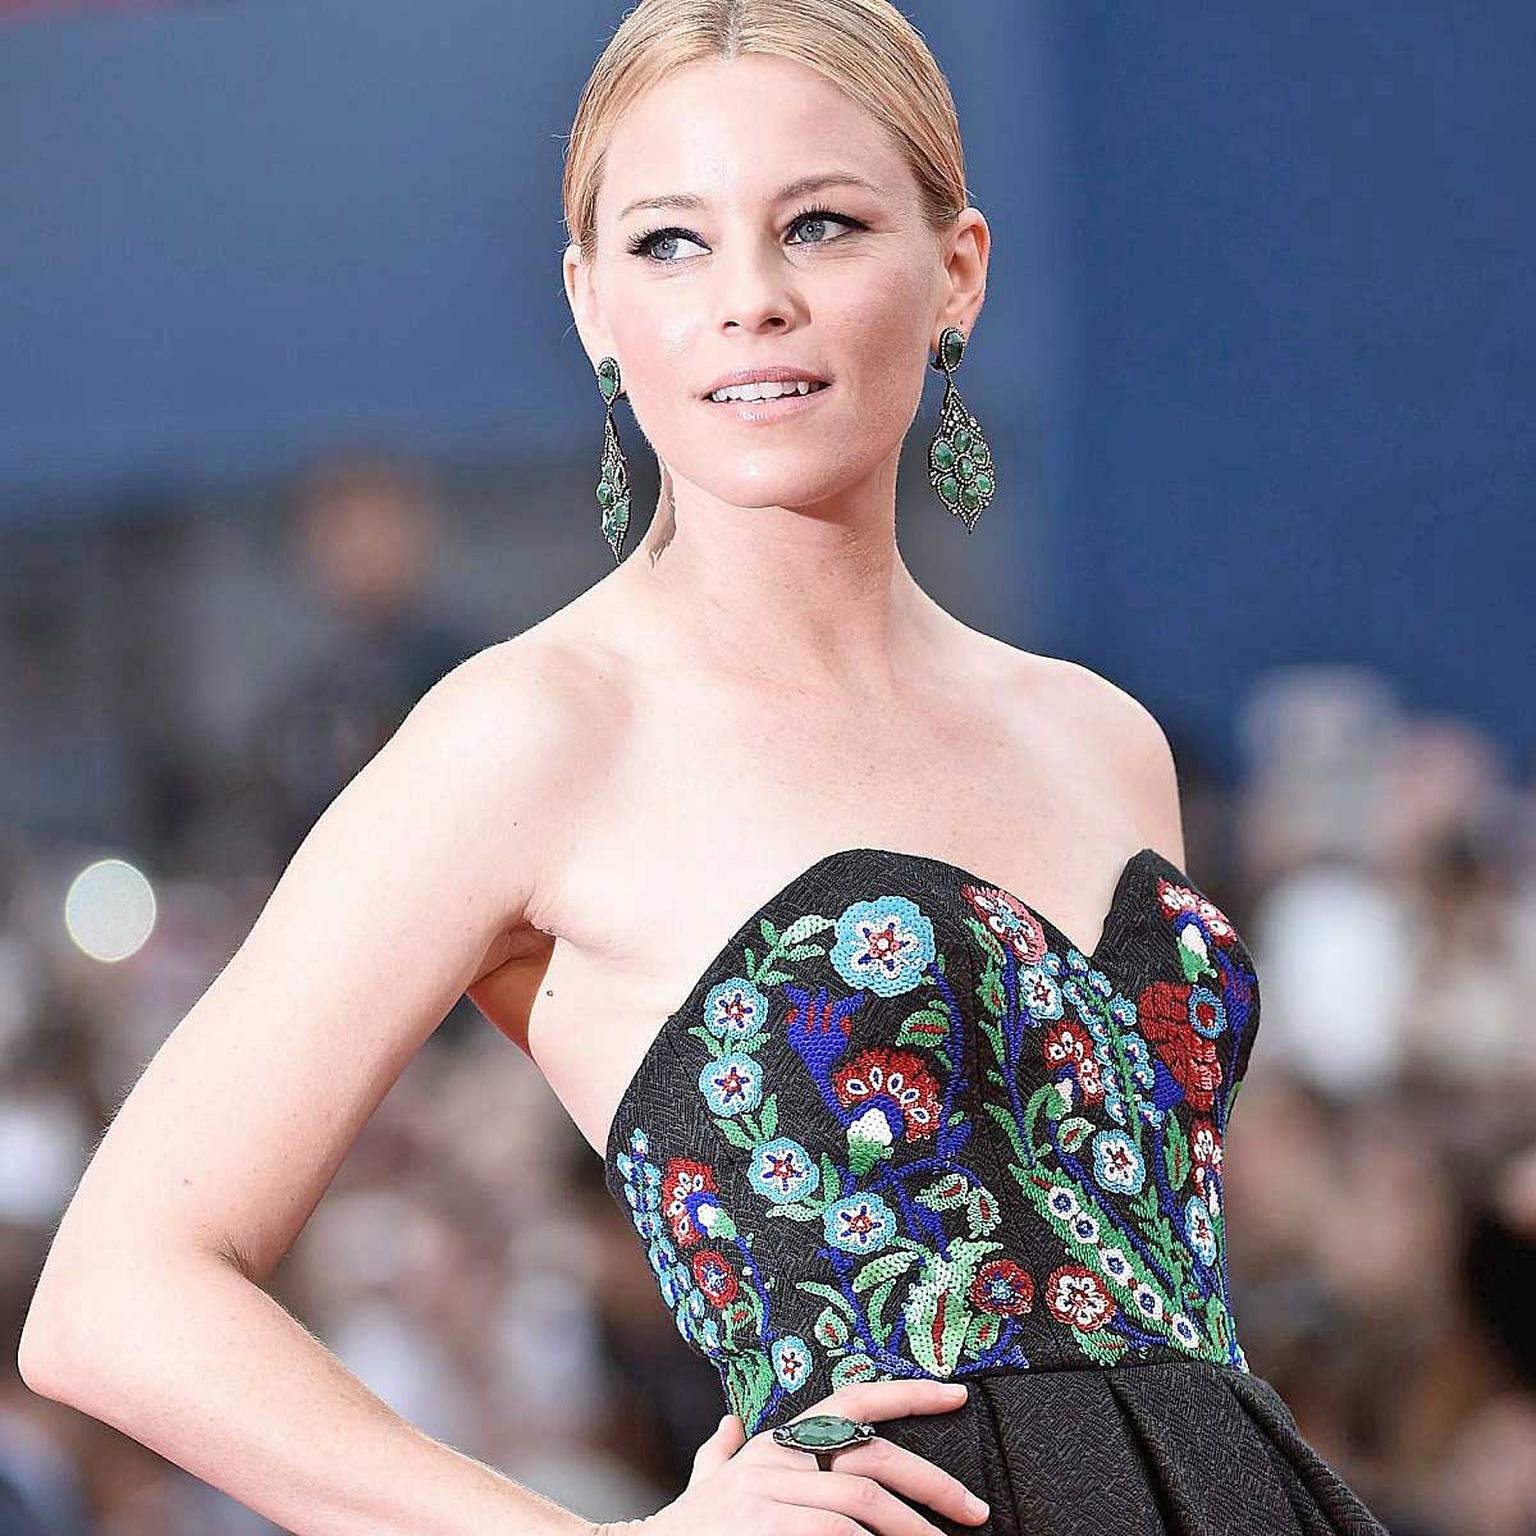 Elizabeth Banks at the Black Mass premiere wearing Sutra